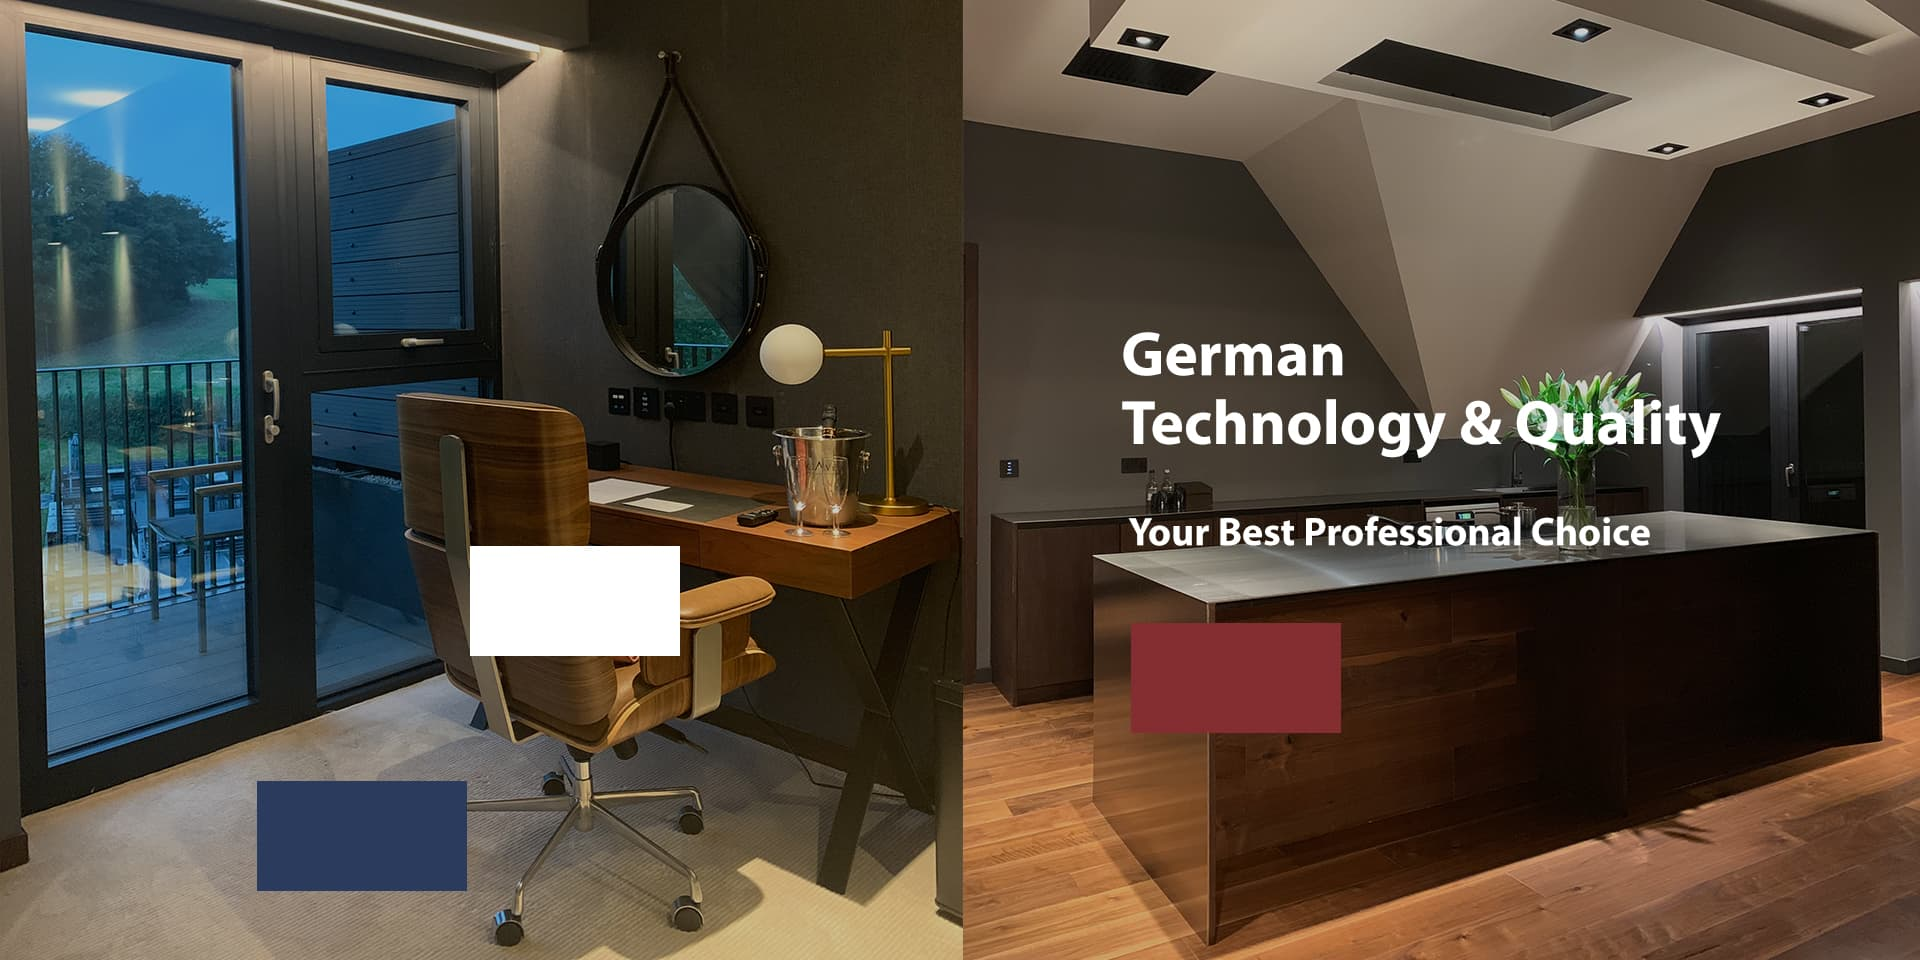 German technology & quality, your best professional choice.